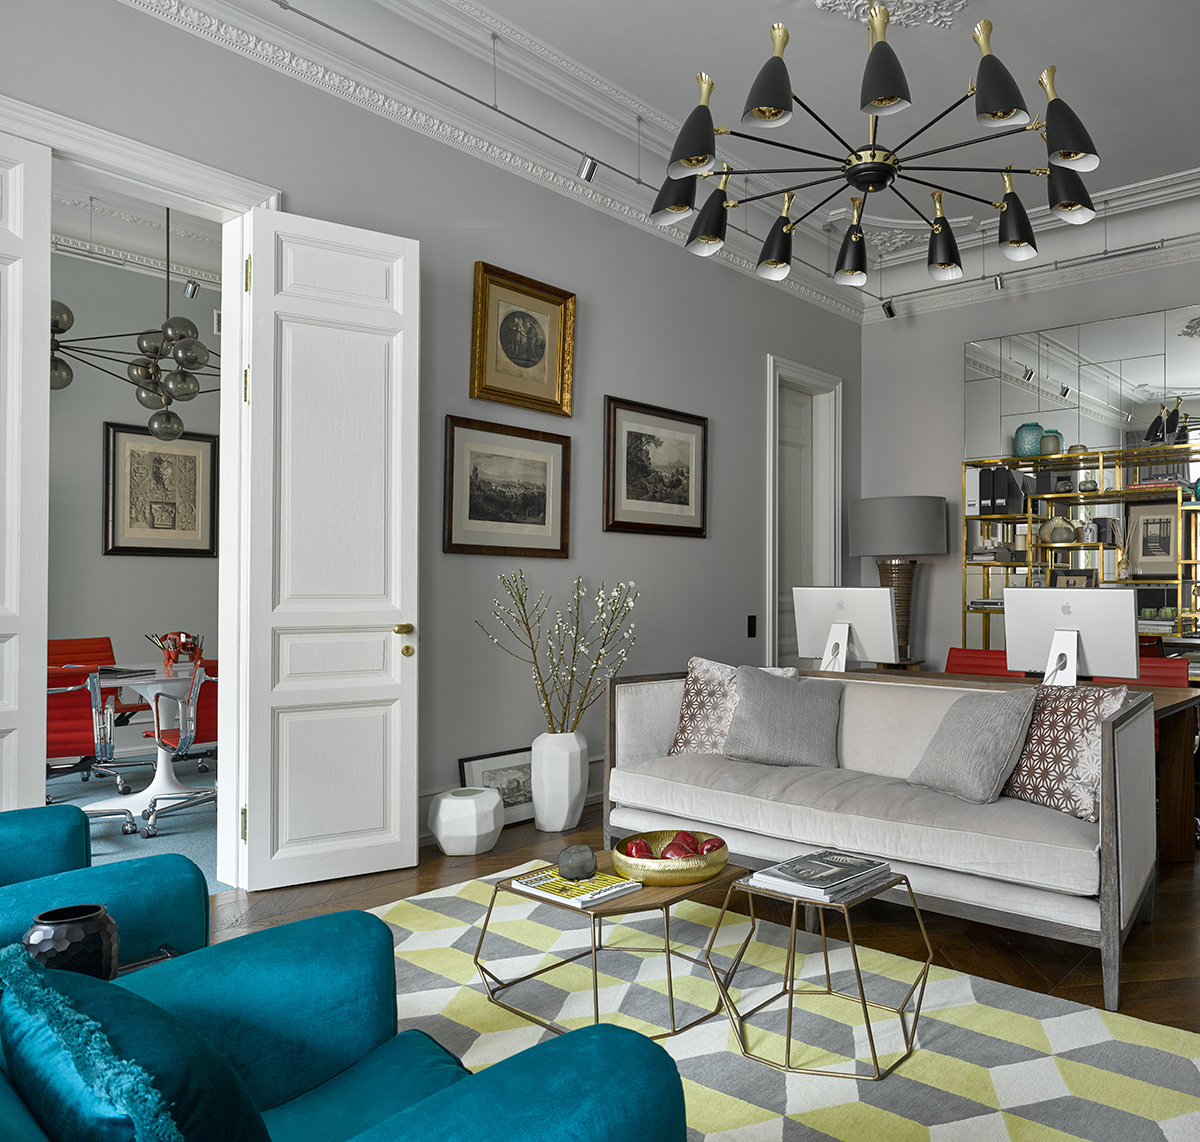 A mid-century apartment in Russia